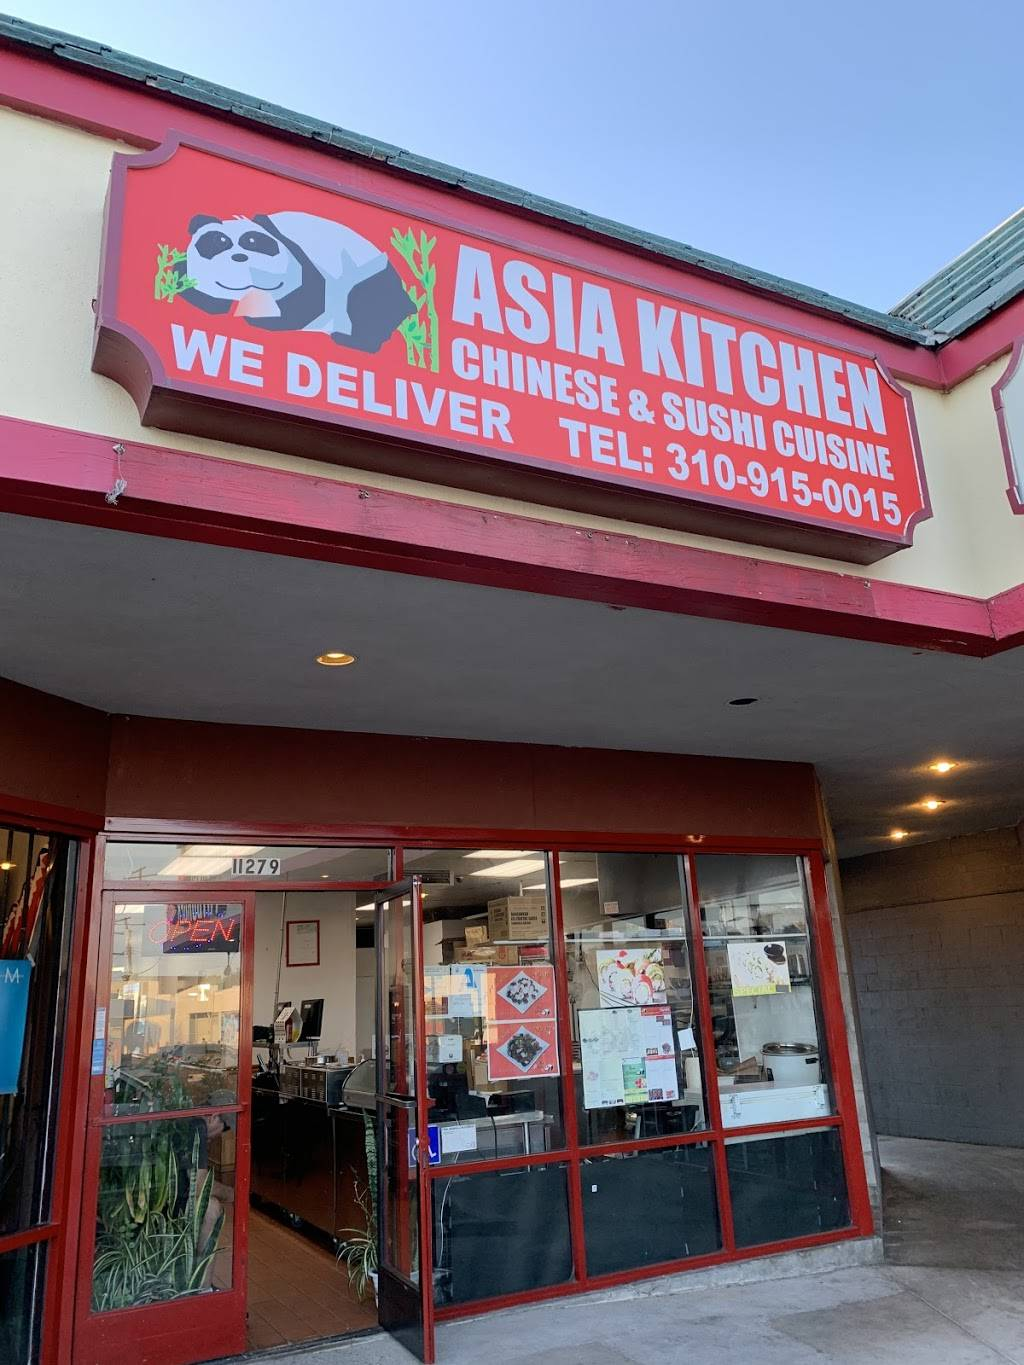 Asia Kitchen - meal delivery  | Photo 2 of 9 | Address: 11279 Venice Blvd, Los Angeles, CA 90066, USA | Phone: (310) 915-0015